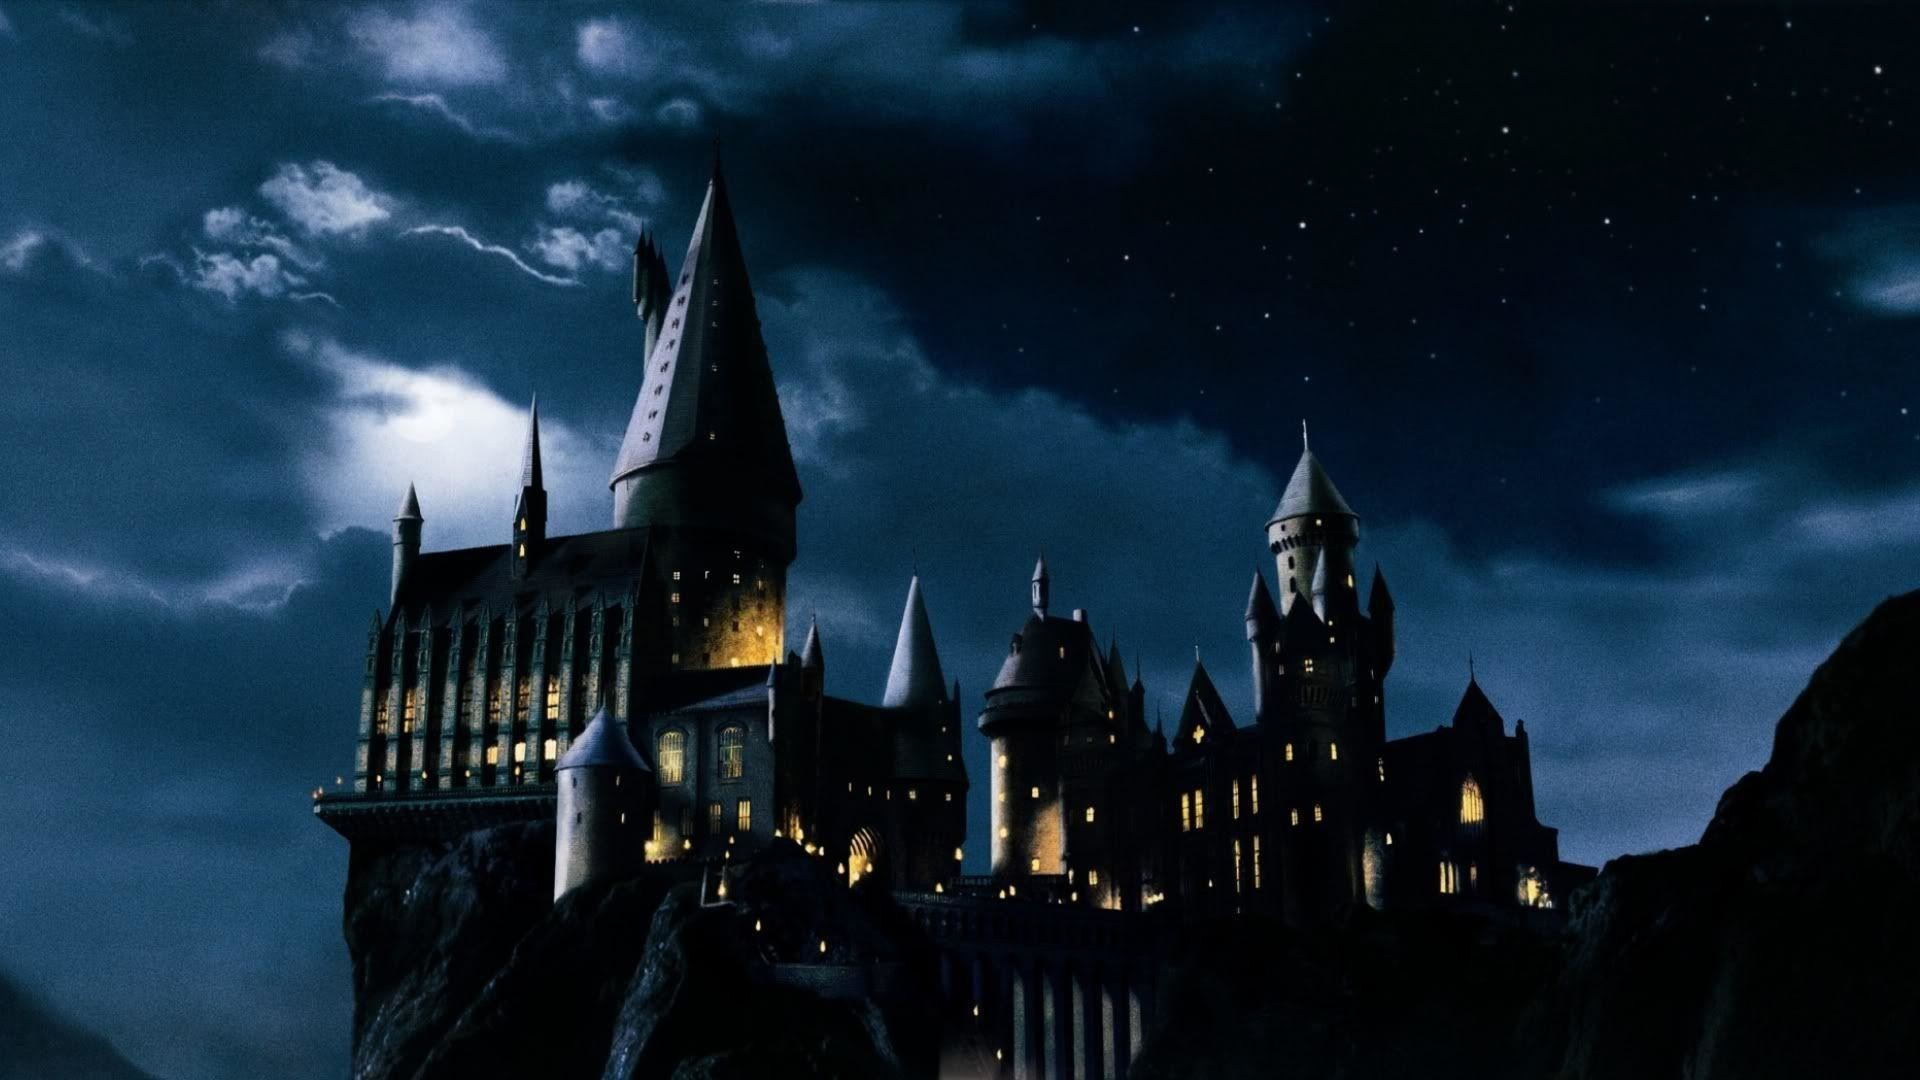 Best Harry Potter Anime Style Wallpapers Backgrounds For Free 4K Phone